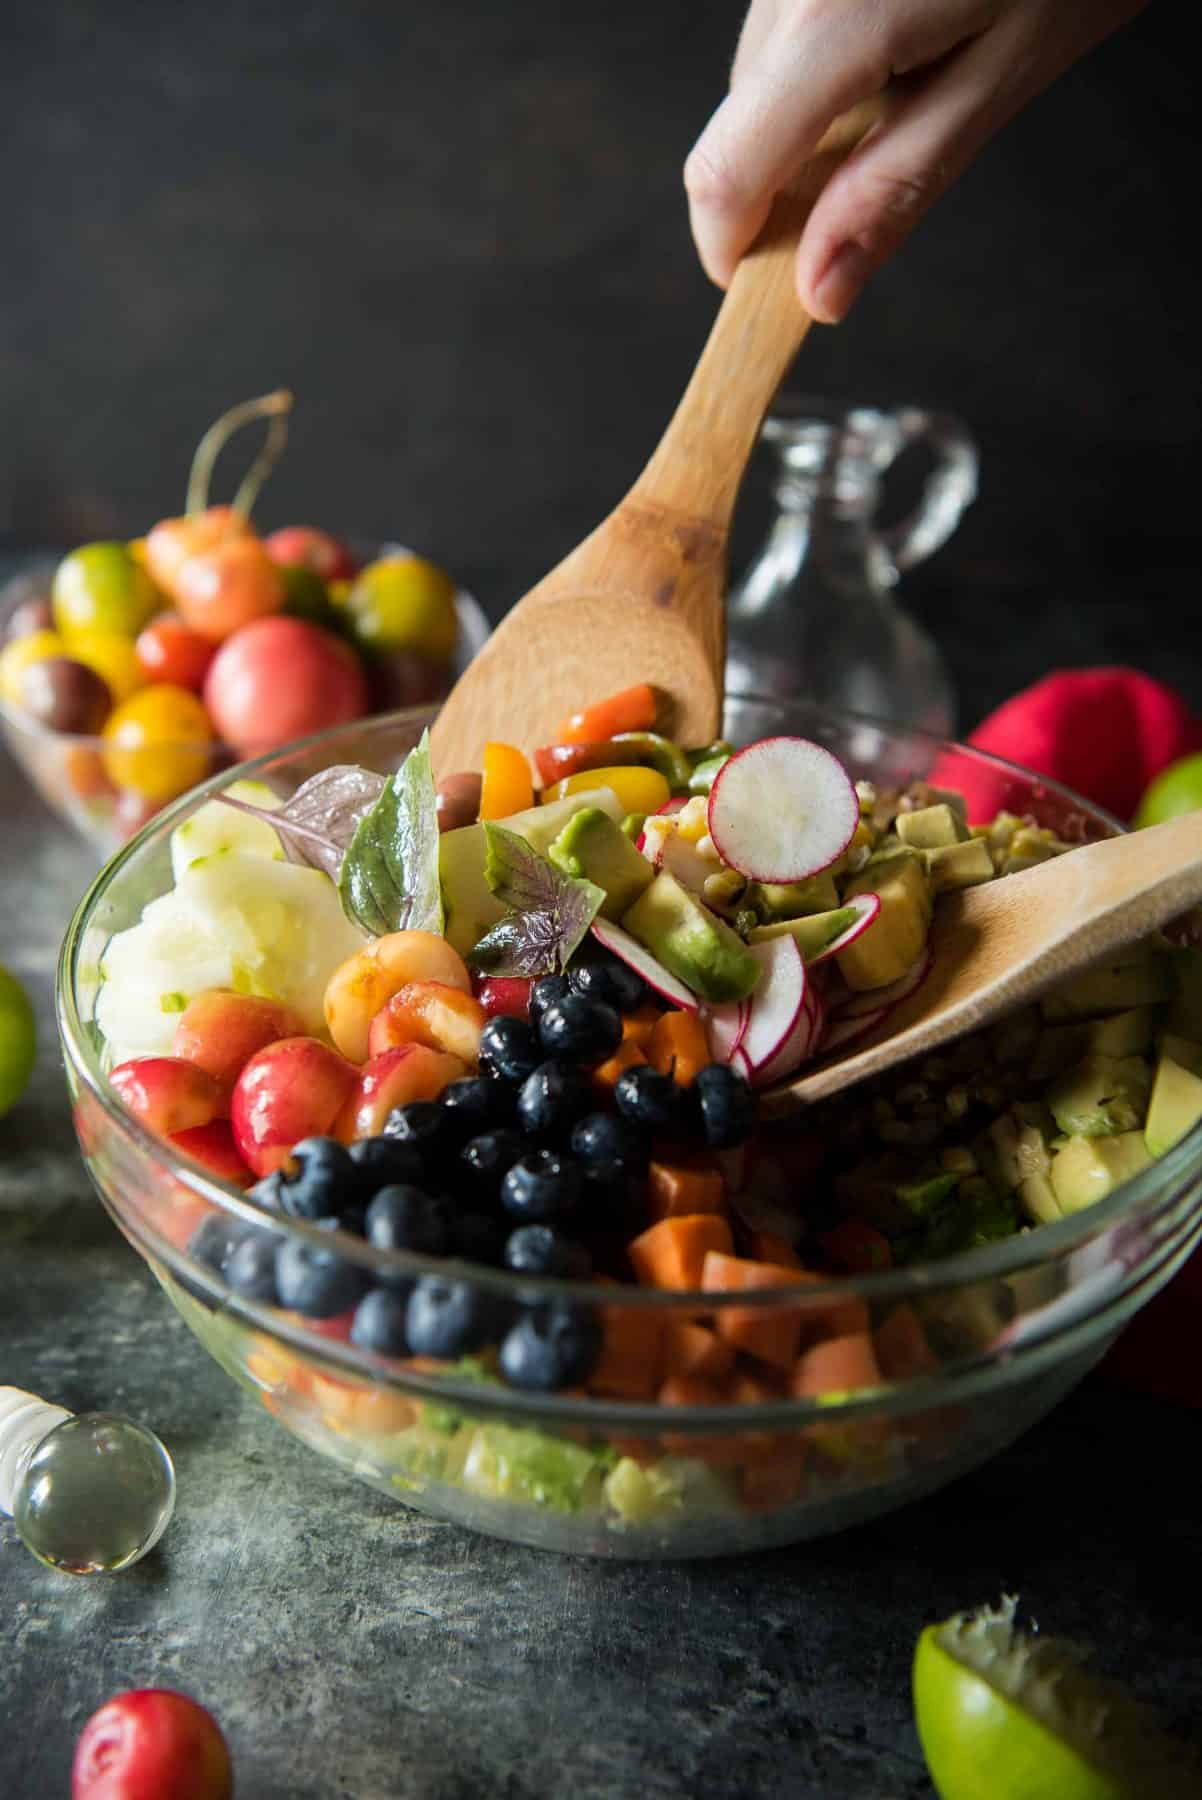 Summer lovin' in a salad! Grilled chicken, grilled corn, fresh cherries, blueberries, and avocado are tossed with standard salad fare and a tangy lime vinaigrette - creating a crunchy Summer Chopped Salad that's perfect for any meal!